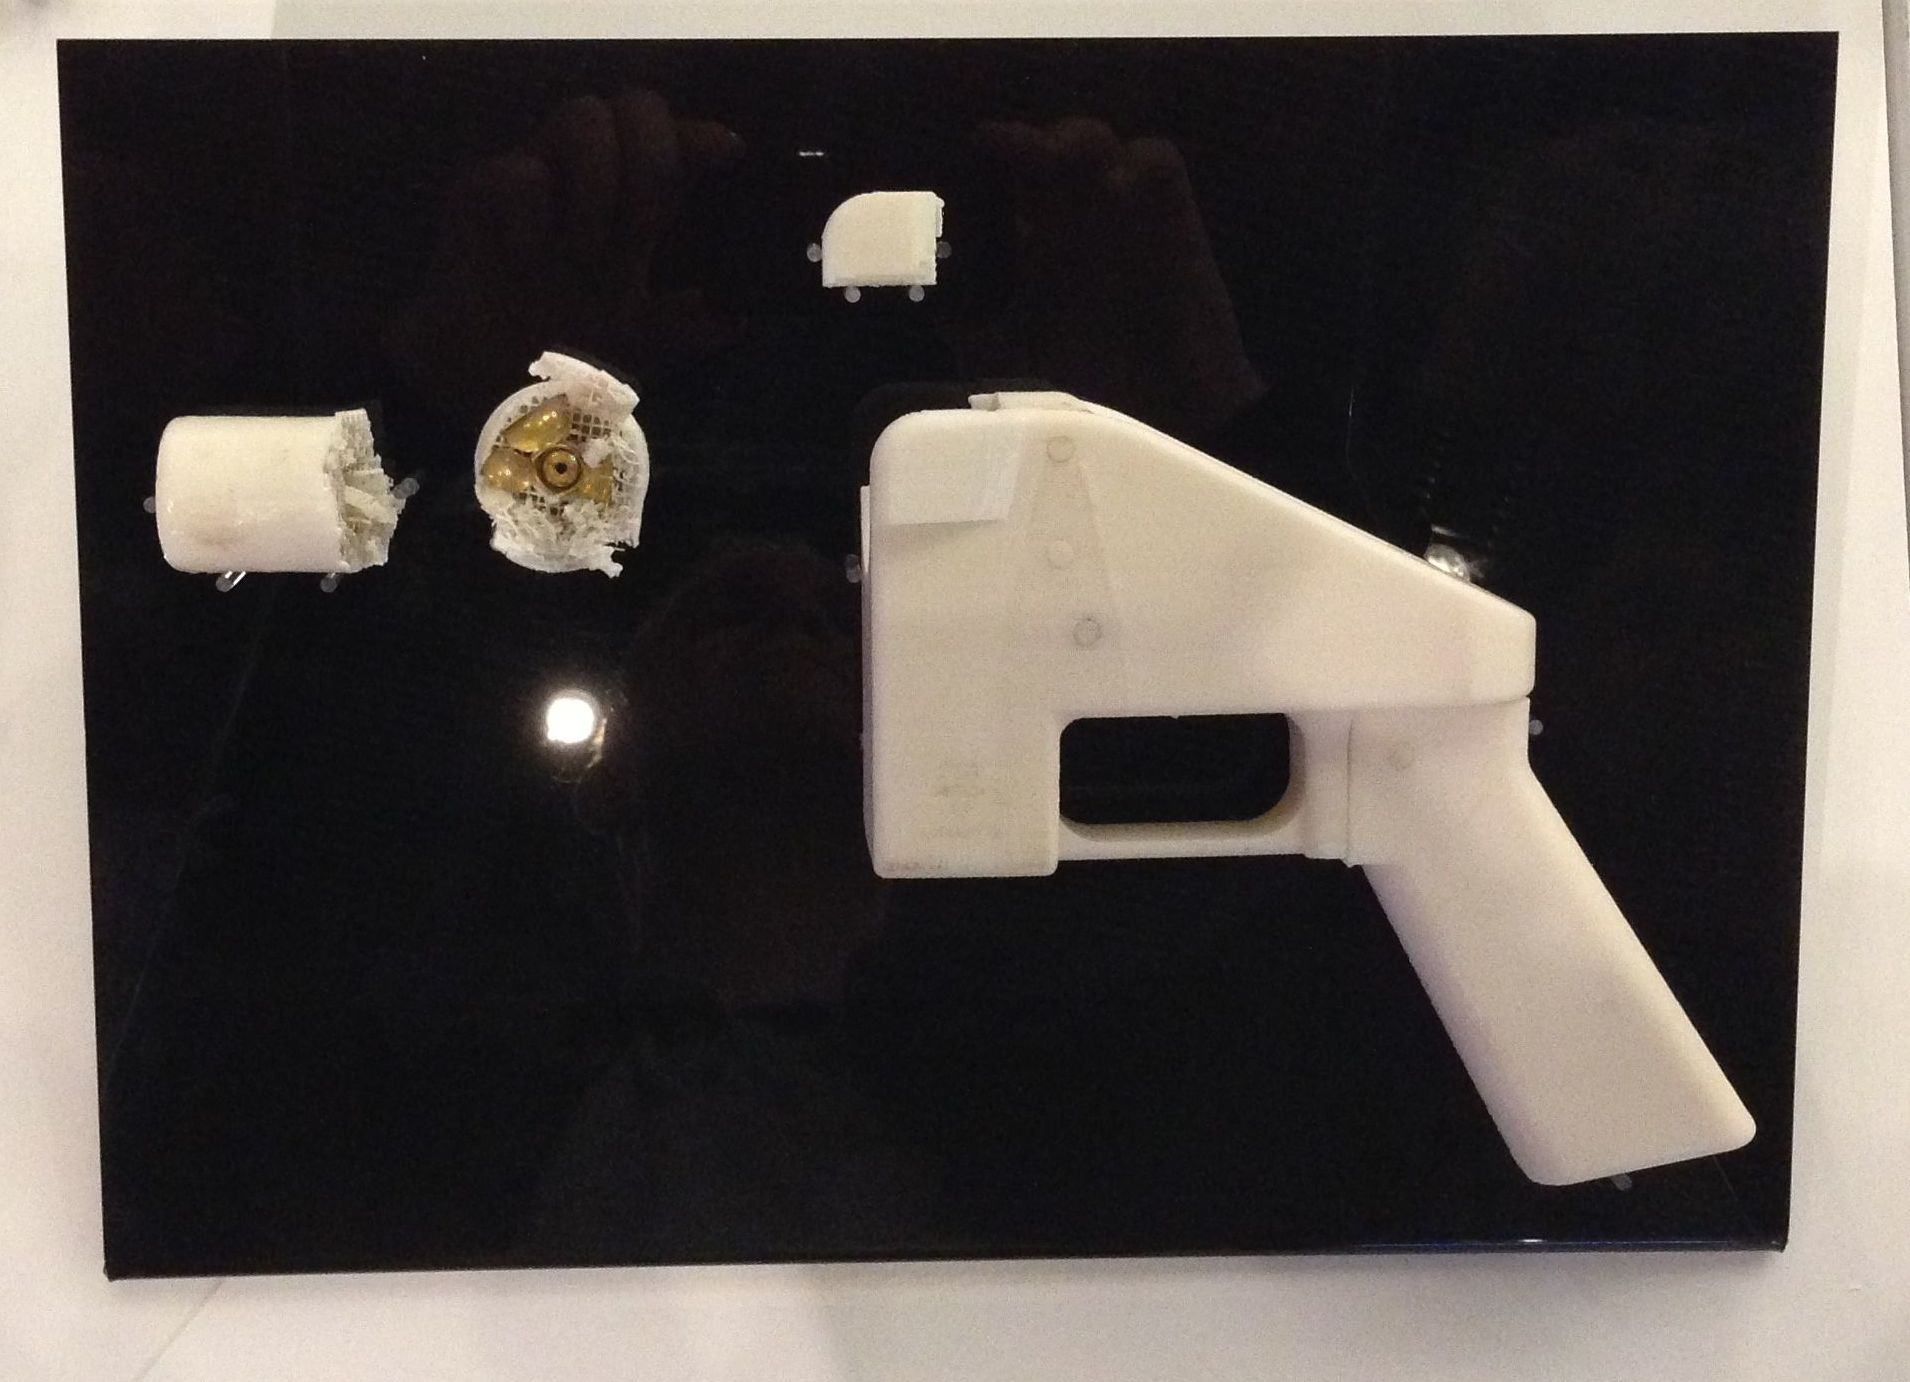 Tokyo Man Busted for 3D Printed Weapons